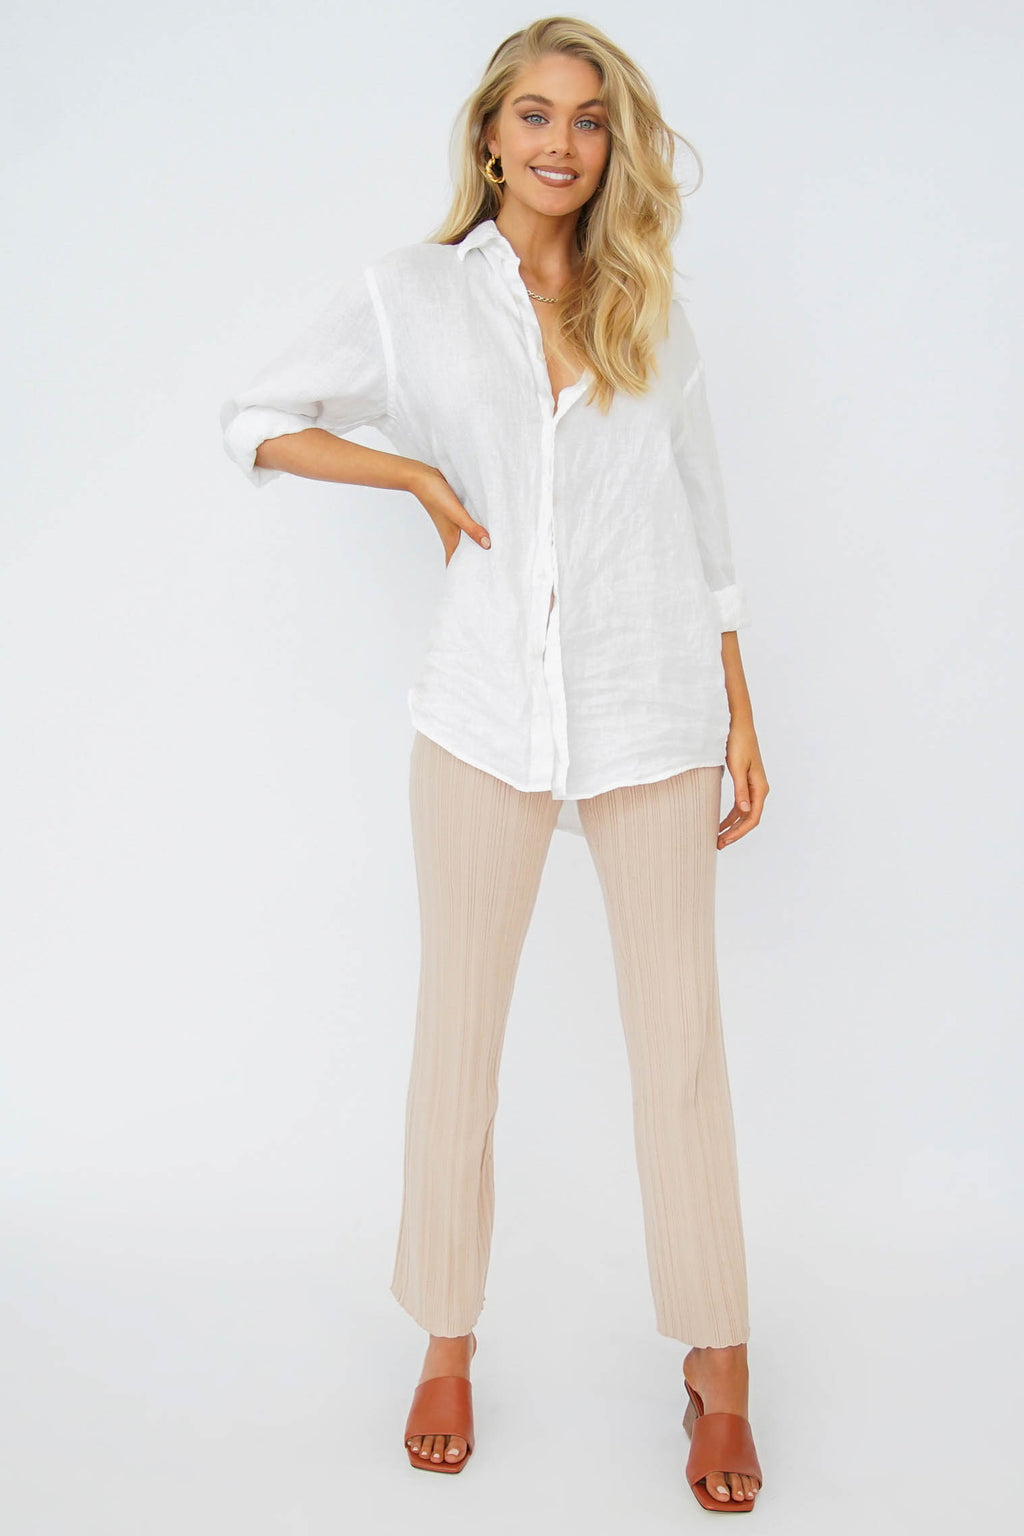 VRG GRL Beyond The Horizon Button Front Shirt // Natural